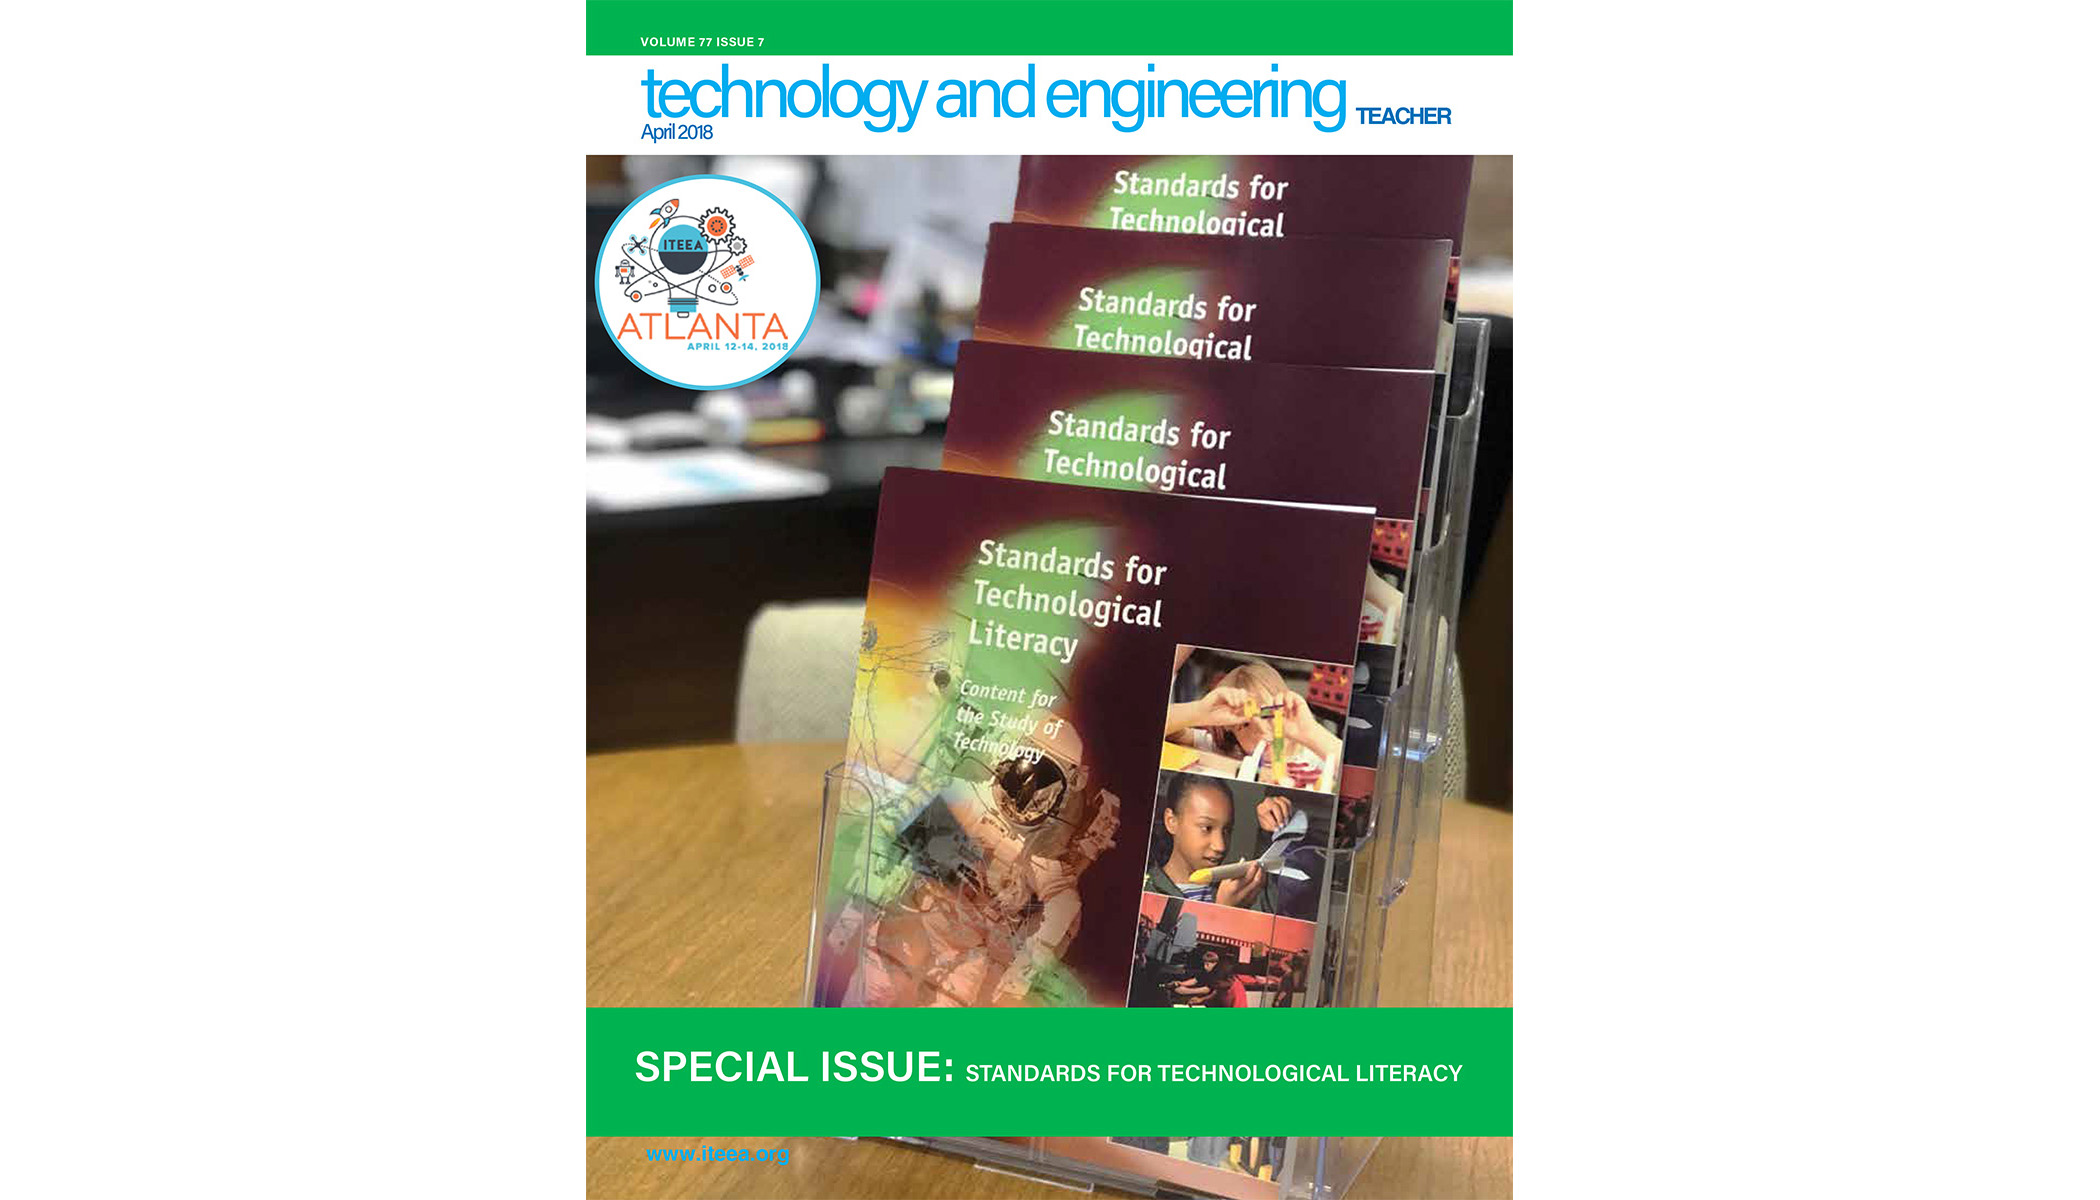 Here's a sampling of what's available in the April 2018 issue of Technology and Engineering Teacher